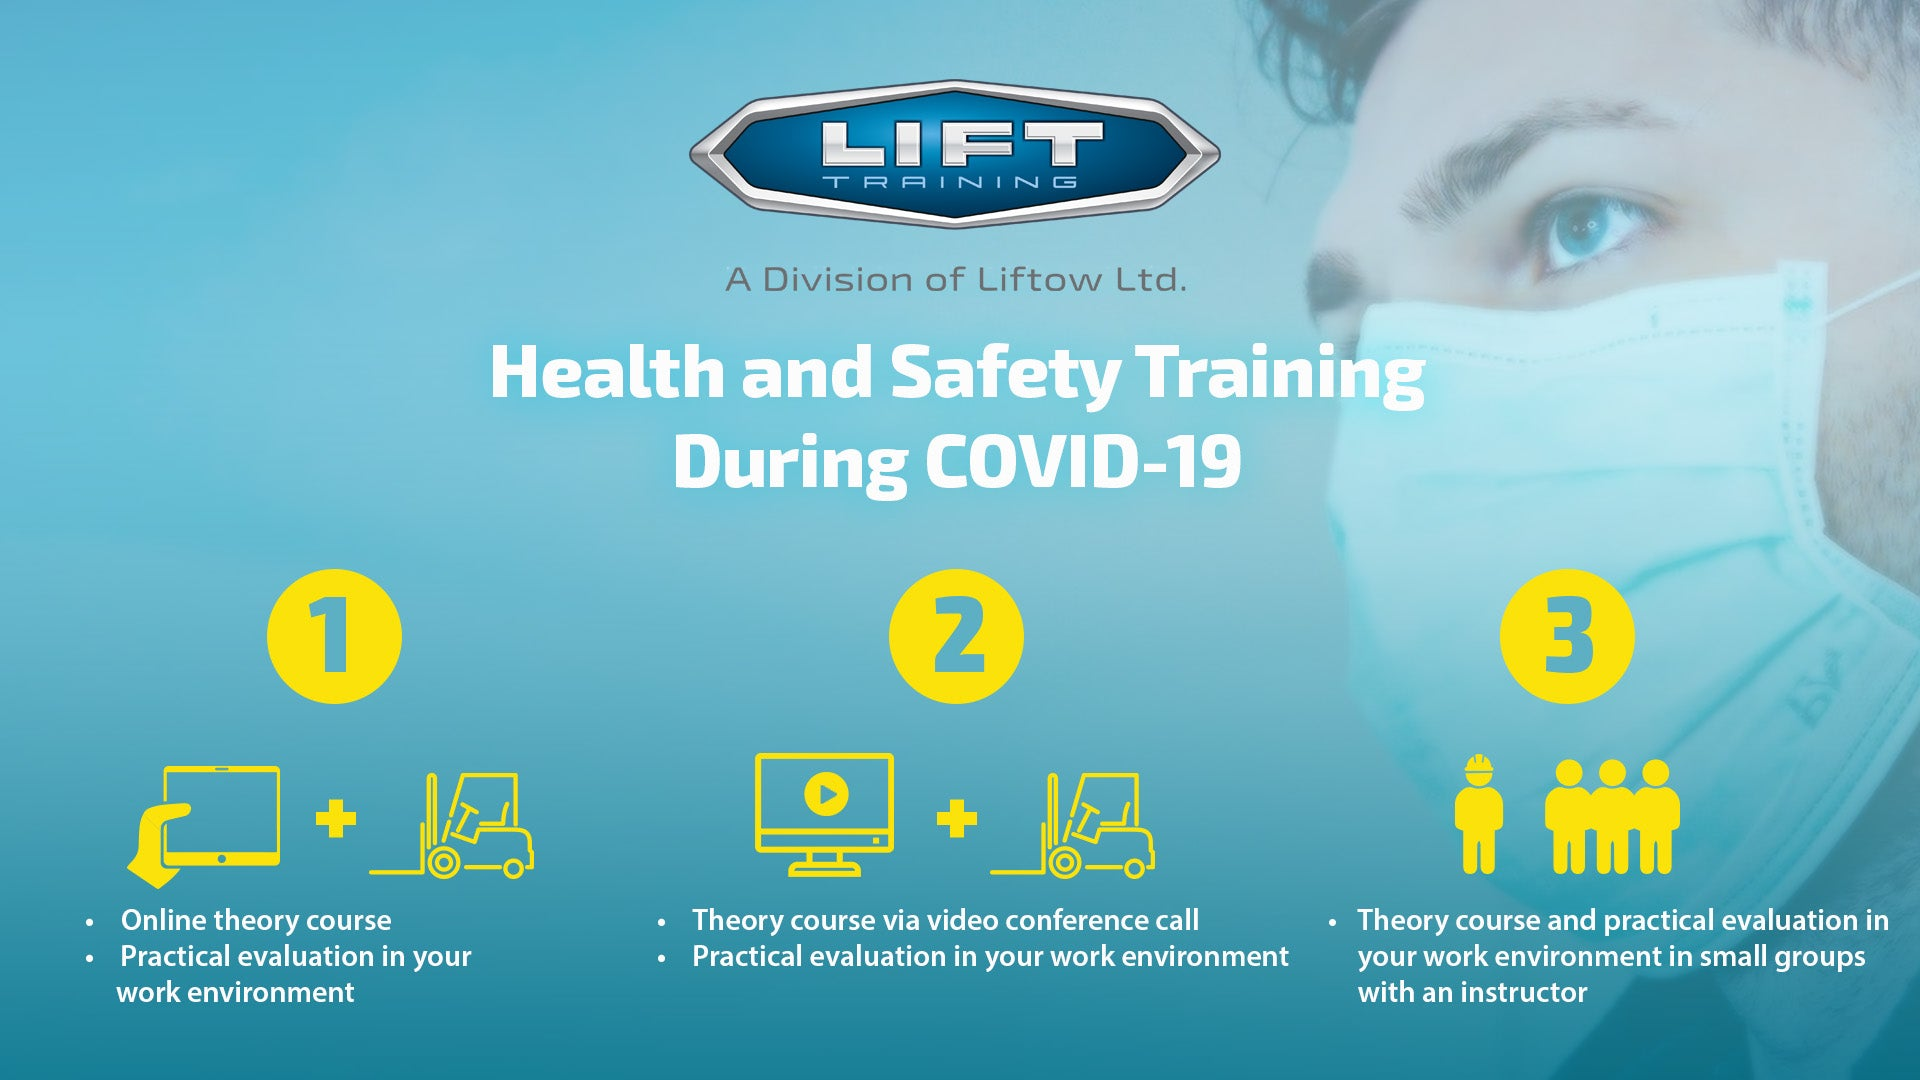 LIFT Training – A Division of Liftow